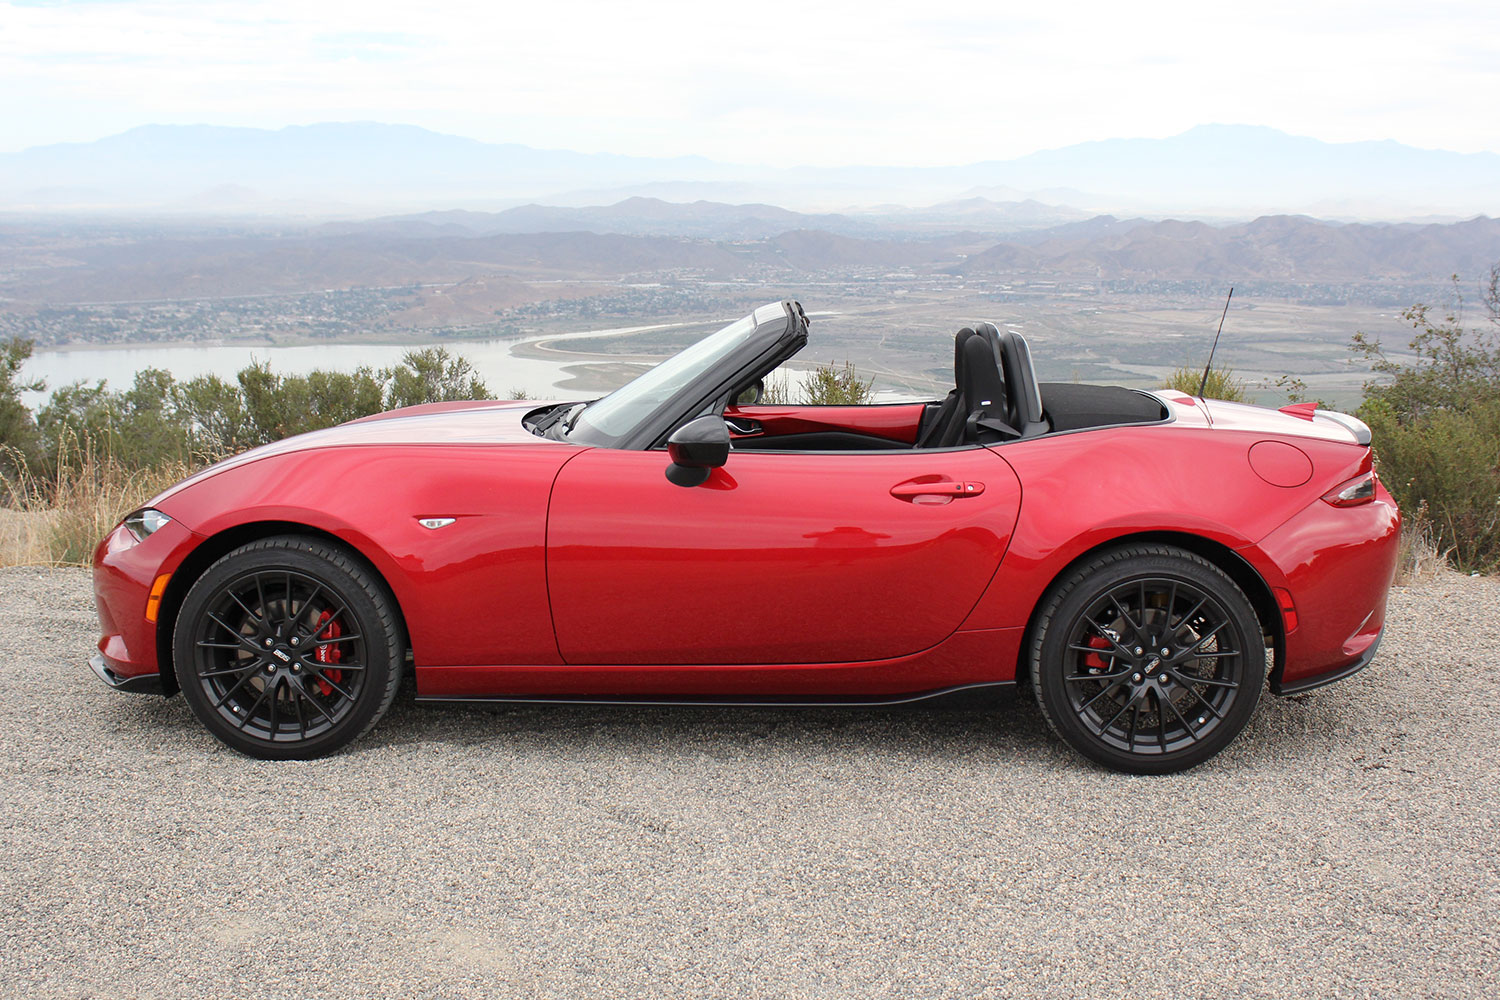 http://s3.amazonaws.com/digitaltrends-uploads-prod/2015/09/2016-Mazda-MX-5-Miata-side-top-down.jpg